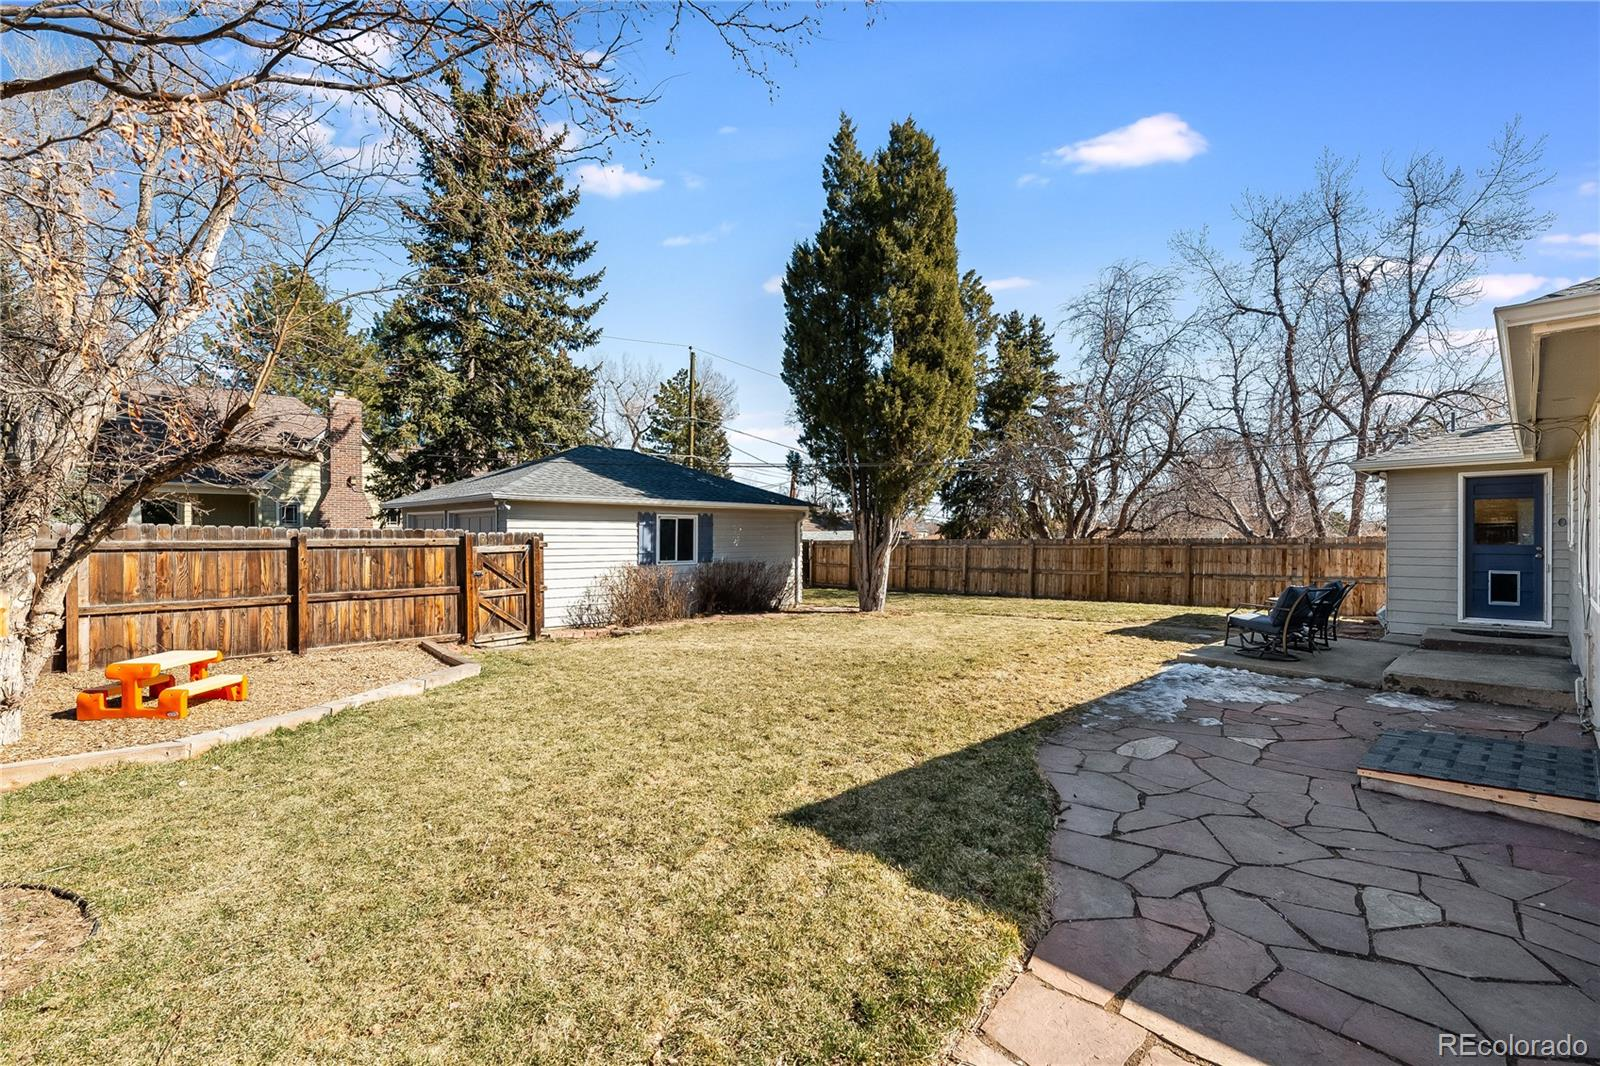 MLS# 2050120 - 16 - 7195 W 24th Place, Lakewood, CO 80214